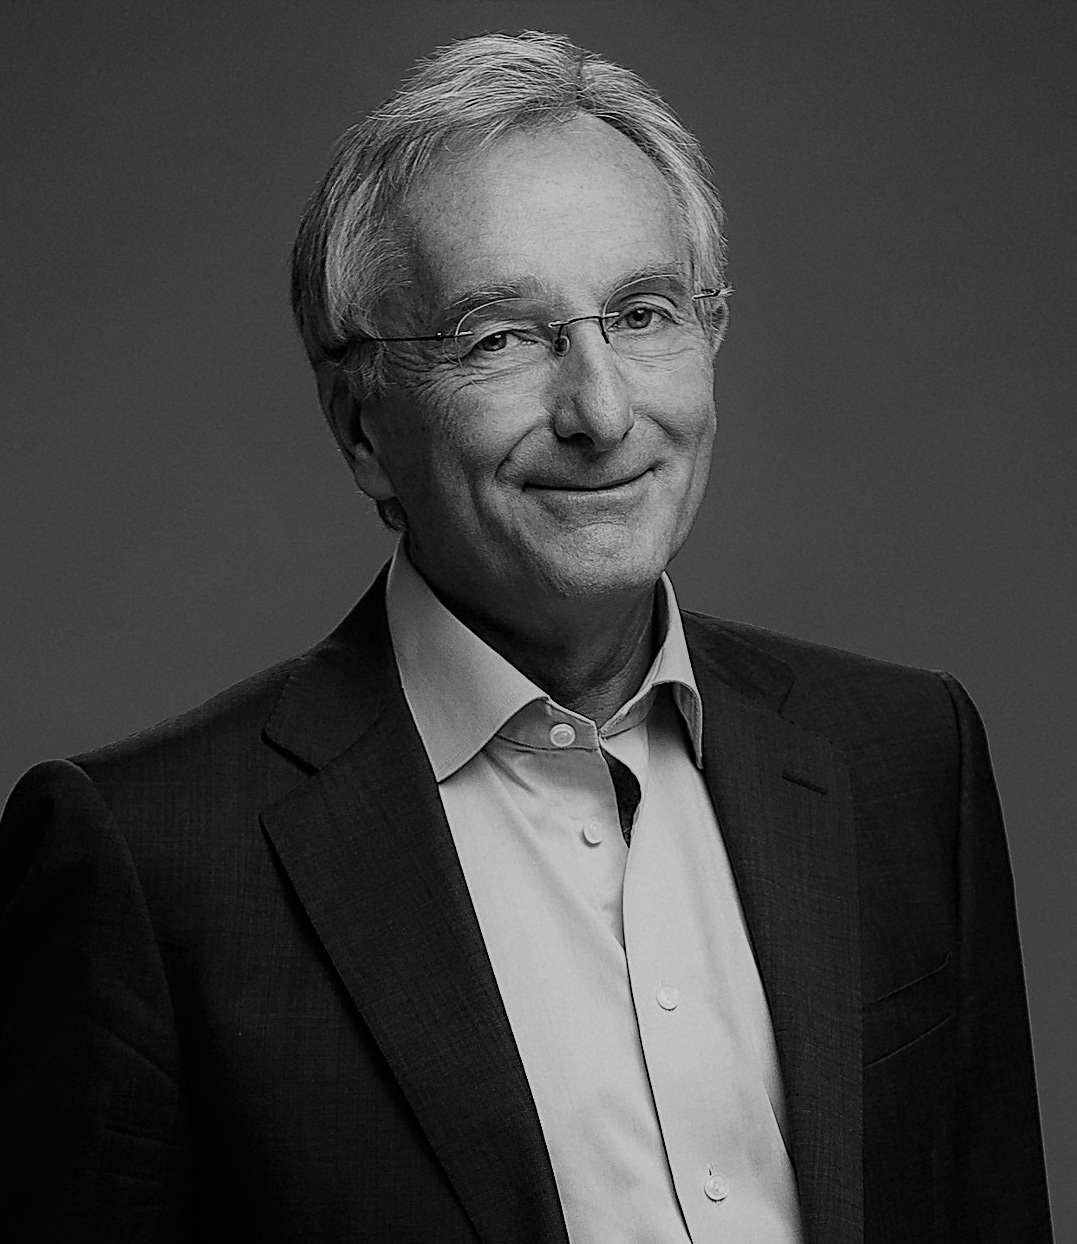 Michel Picot - Michel has been a Trustee of Pension Funds linked with French Parent Companies since 2007. He started his career as an auditor with KPMG and held various international Financial and Executive positions in listed groups, both in France and abroad. He is a Strategy and Management Consultant for High Tech developing companies and sits on various Boards as Independent Director. Michel is employed by 20-20 Trustee, an independent UK Trustee Firm, which was appointed to the Board in December 2018.